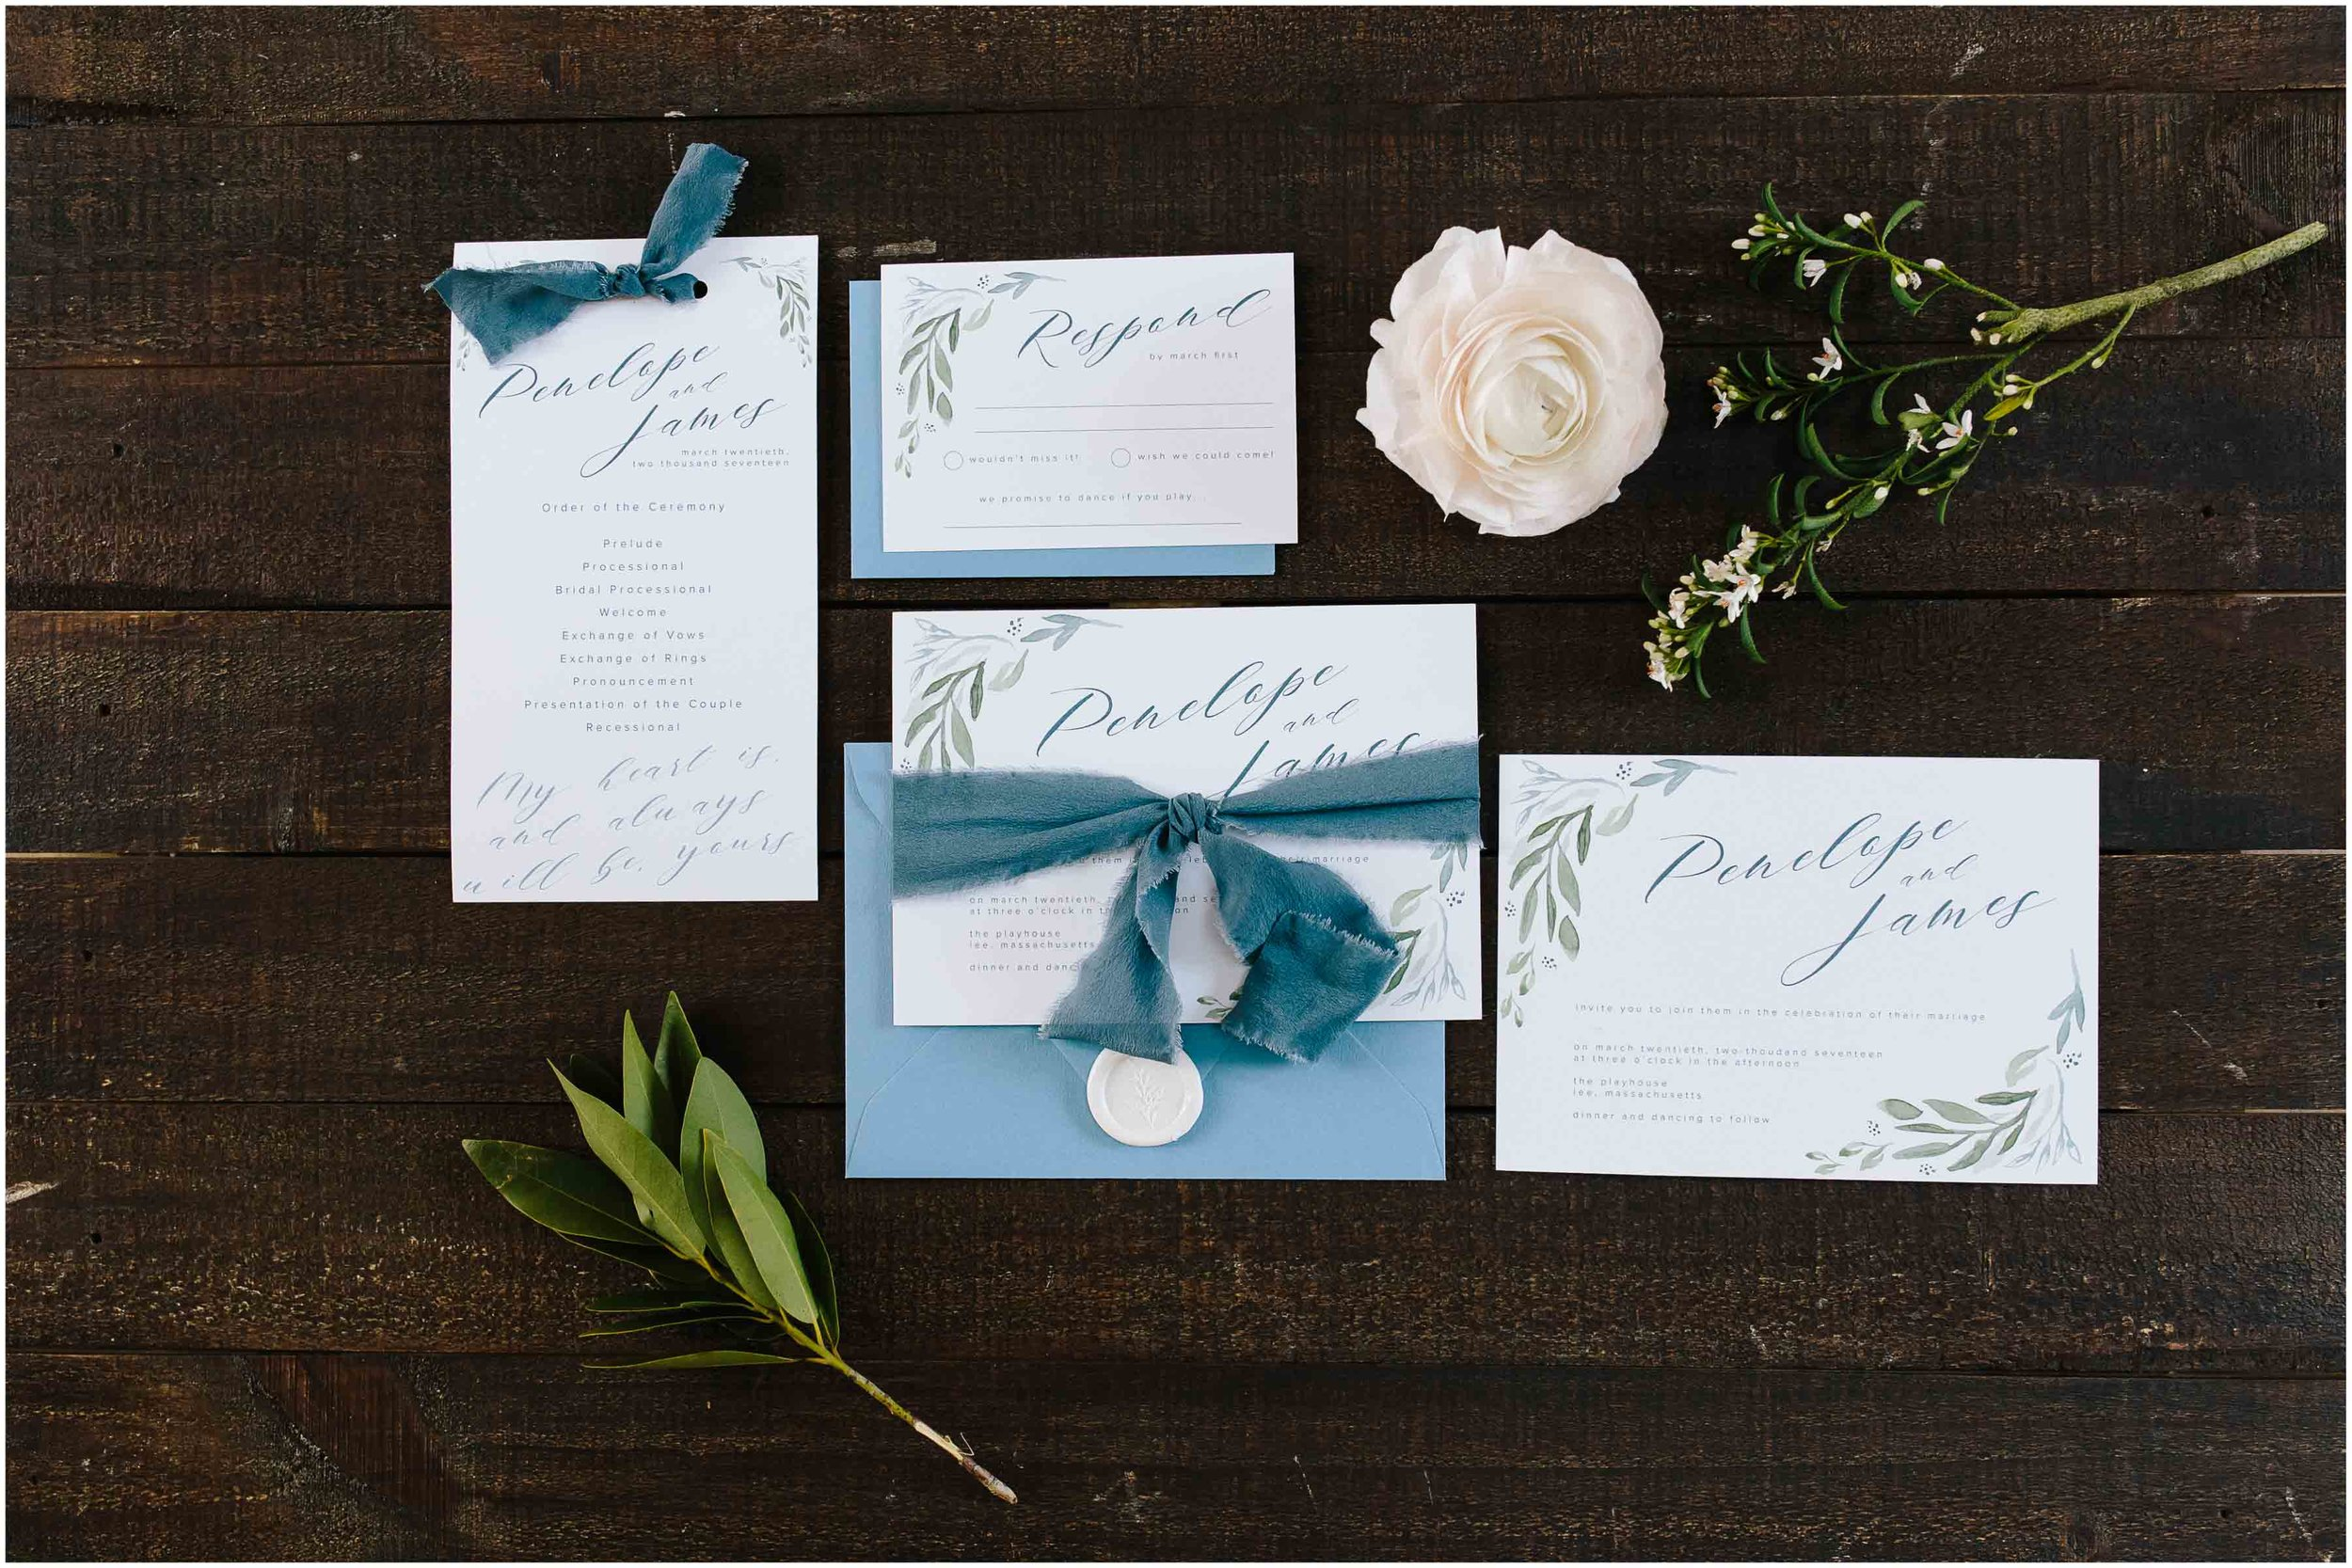 Intimate and romantic styled wedding photography in Lee, Massachusetts in the Berkshires - invitation suite